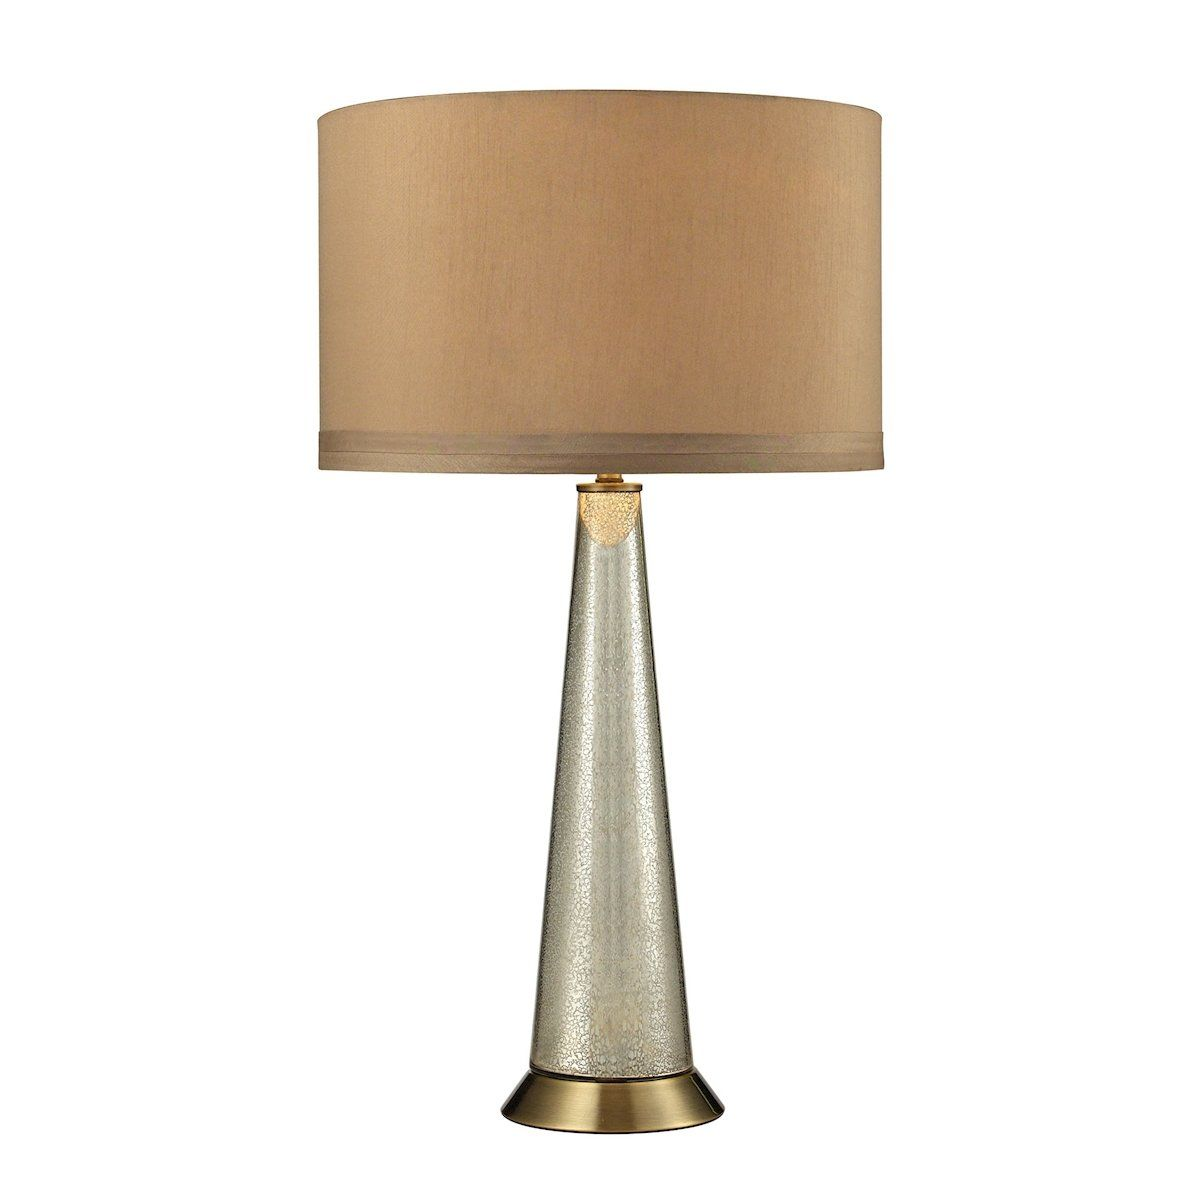 Middlebury Antique Mercury Glass Table Lamp in Aged Brass by Dimond Lighting